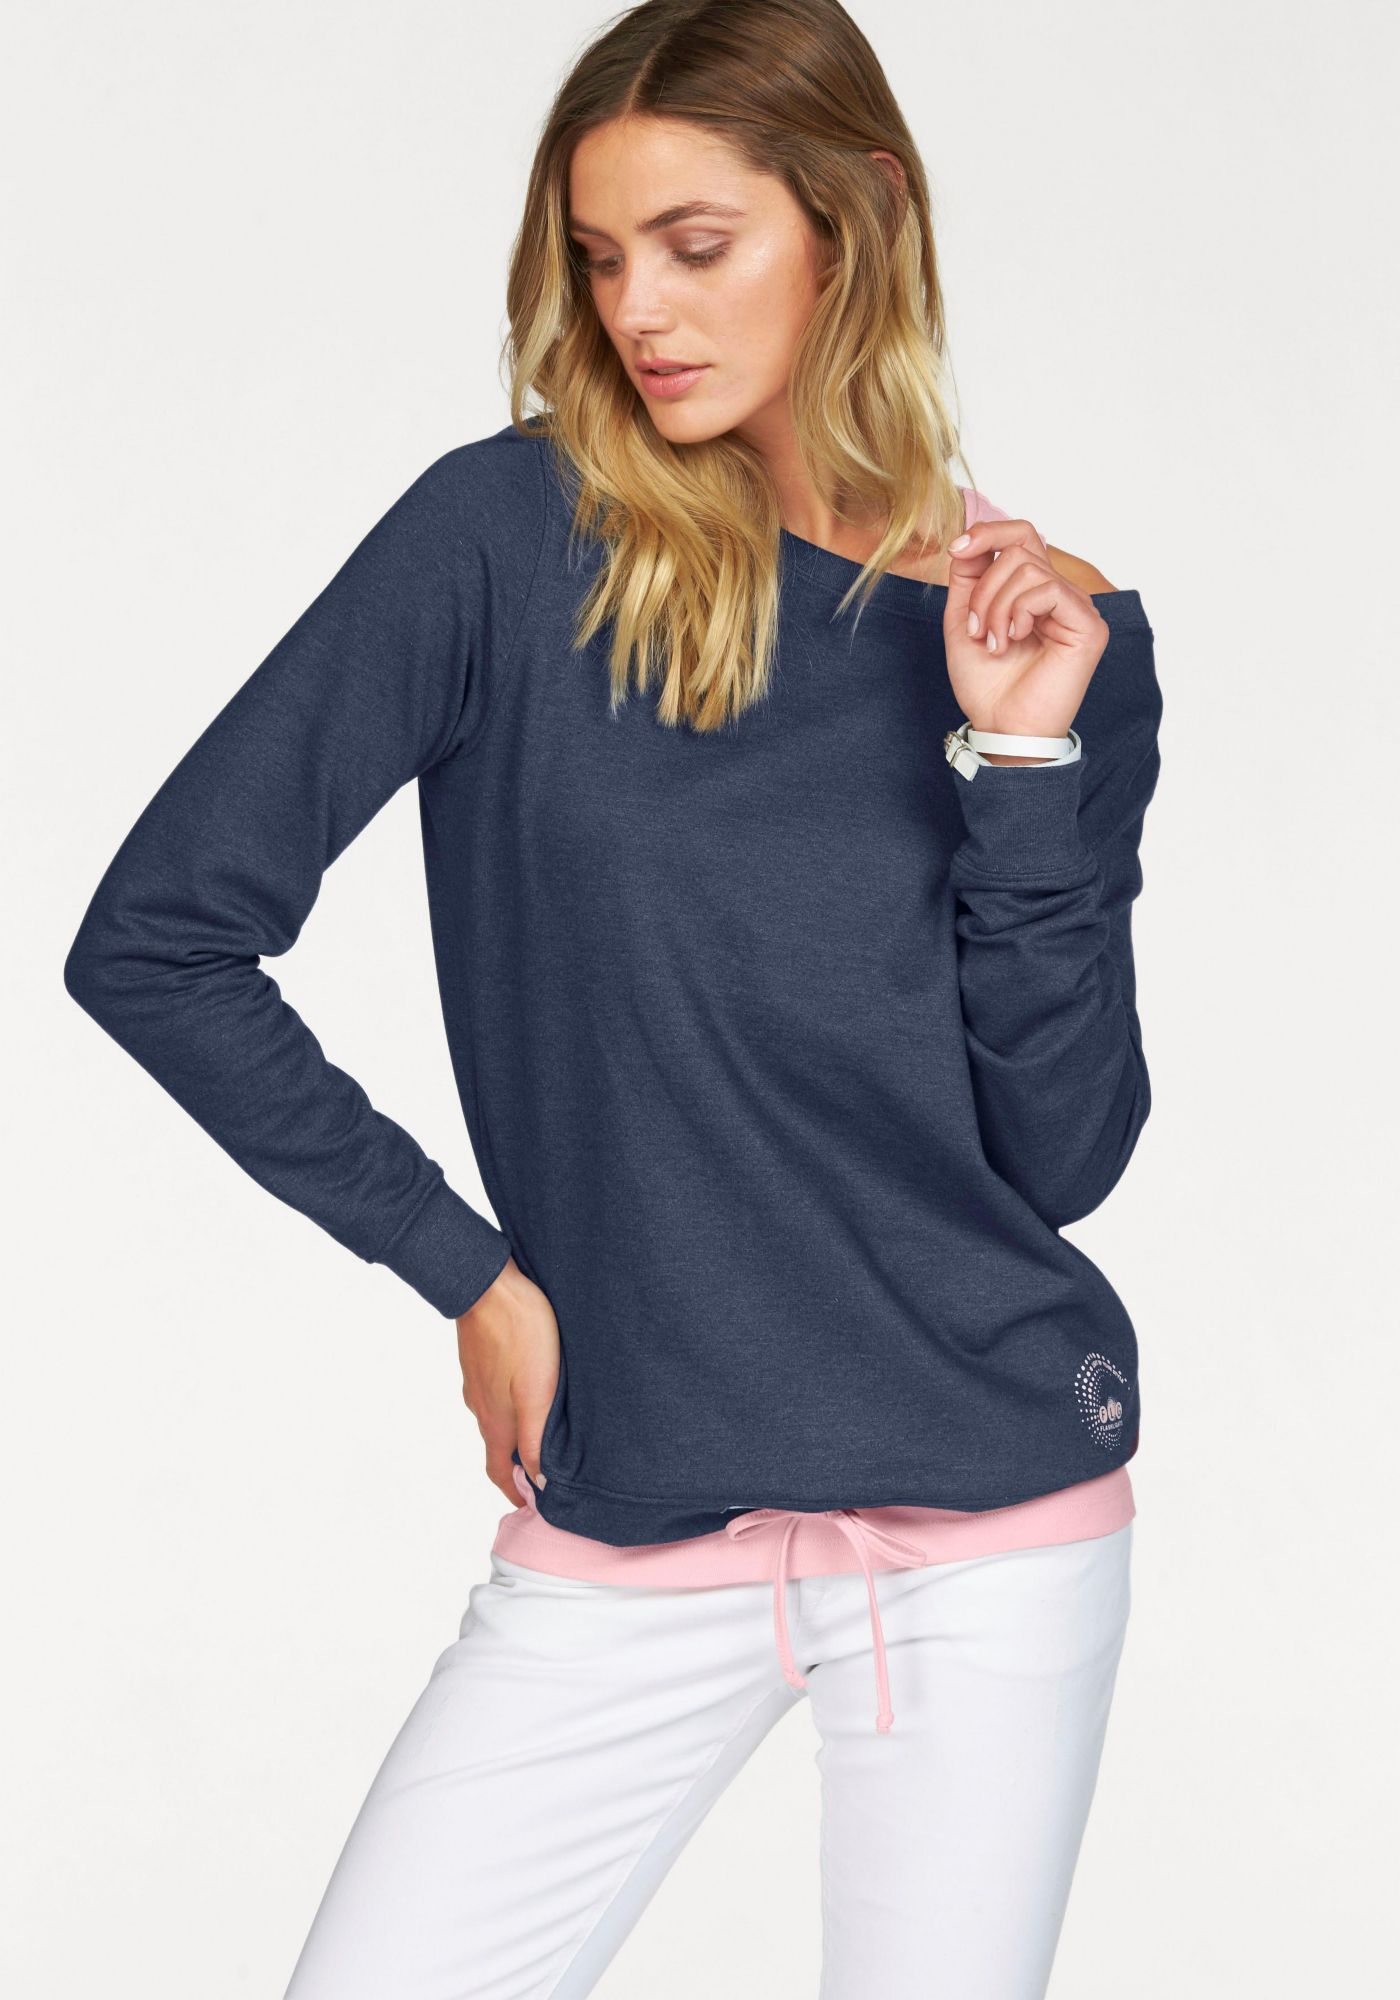 FLG FLASHLIGHTS Flashlights Longsweatshirt (Set, 2 tlg., mit Top)